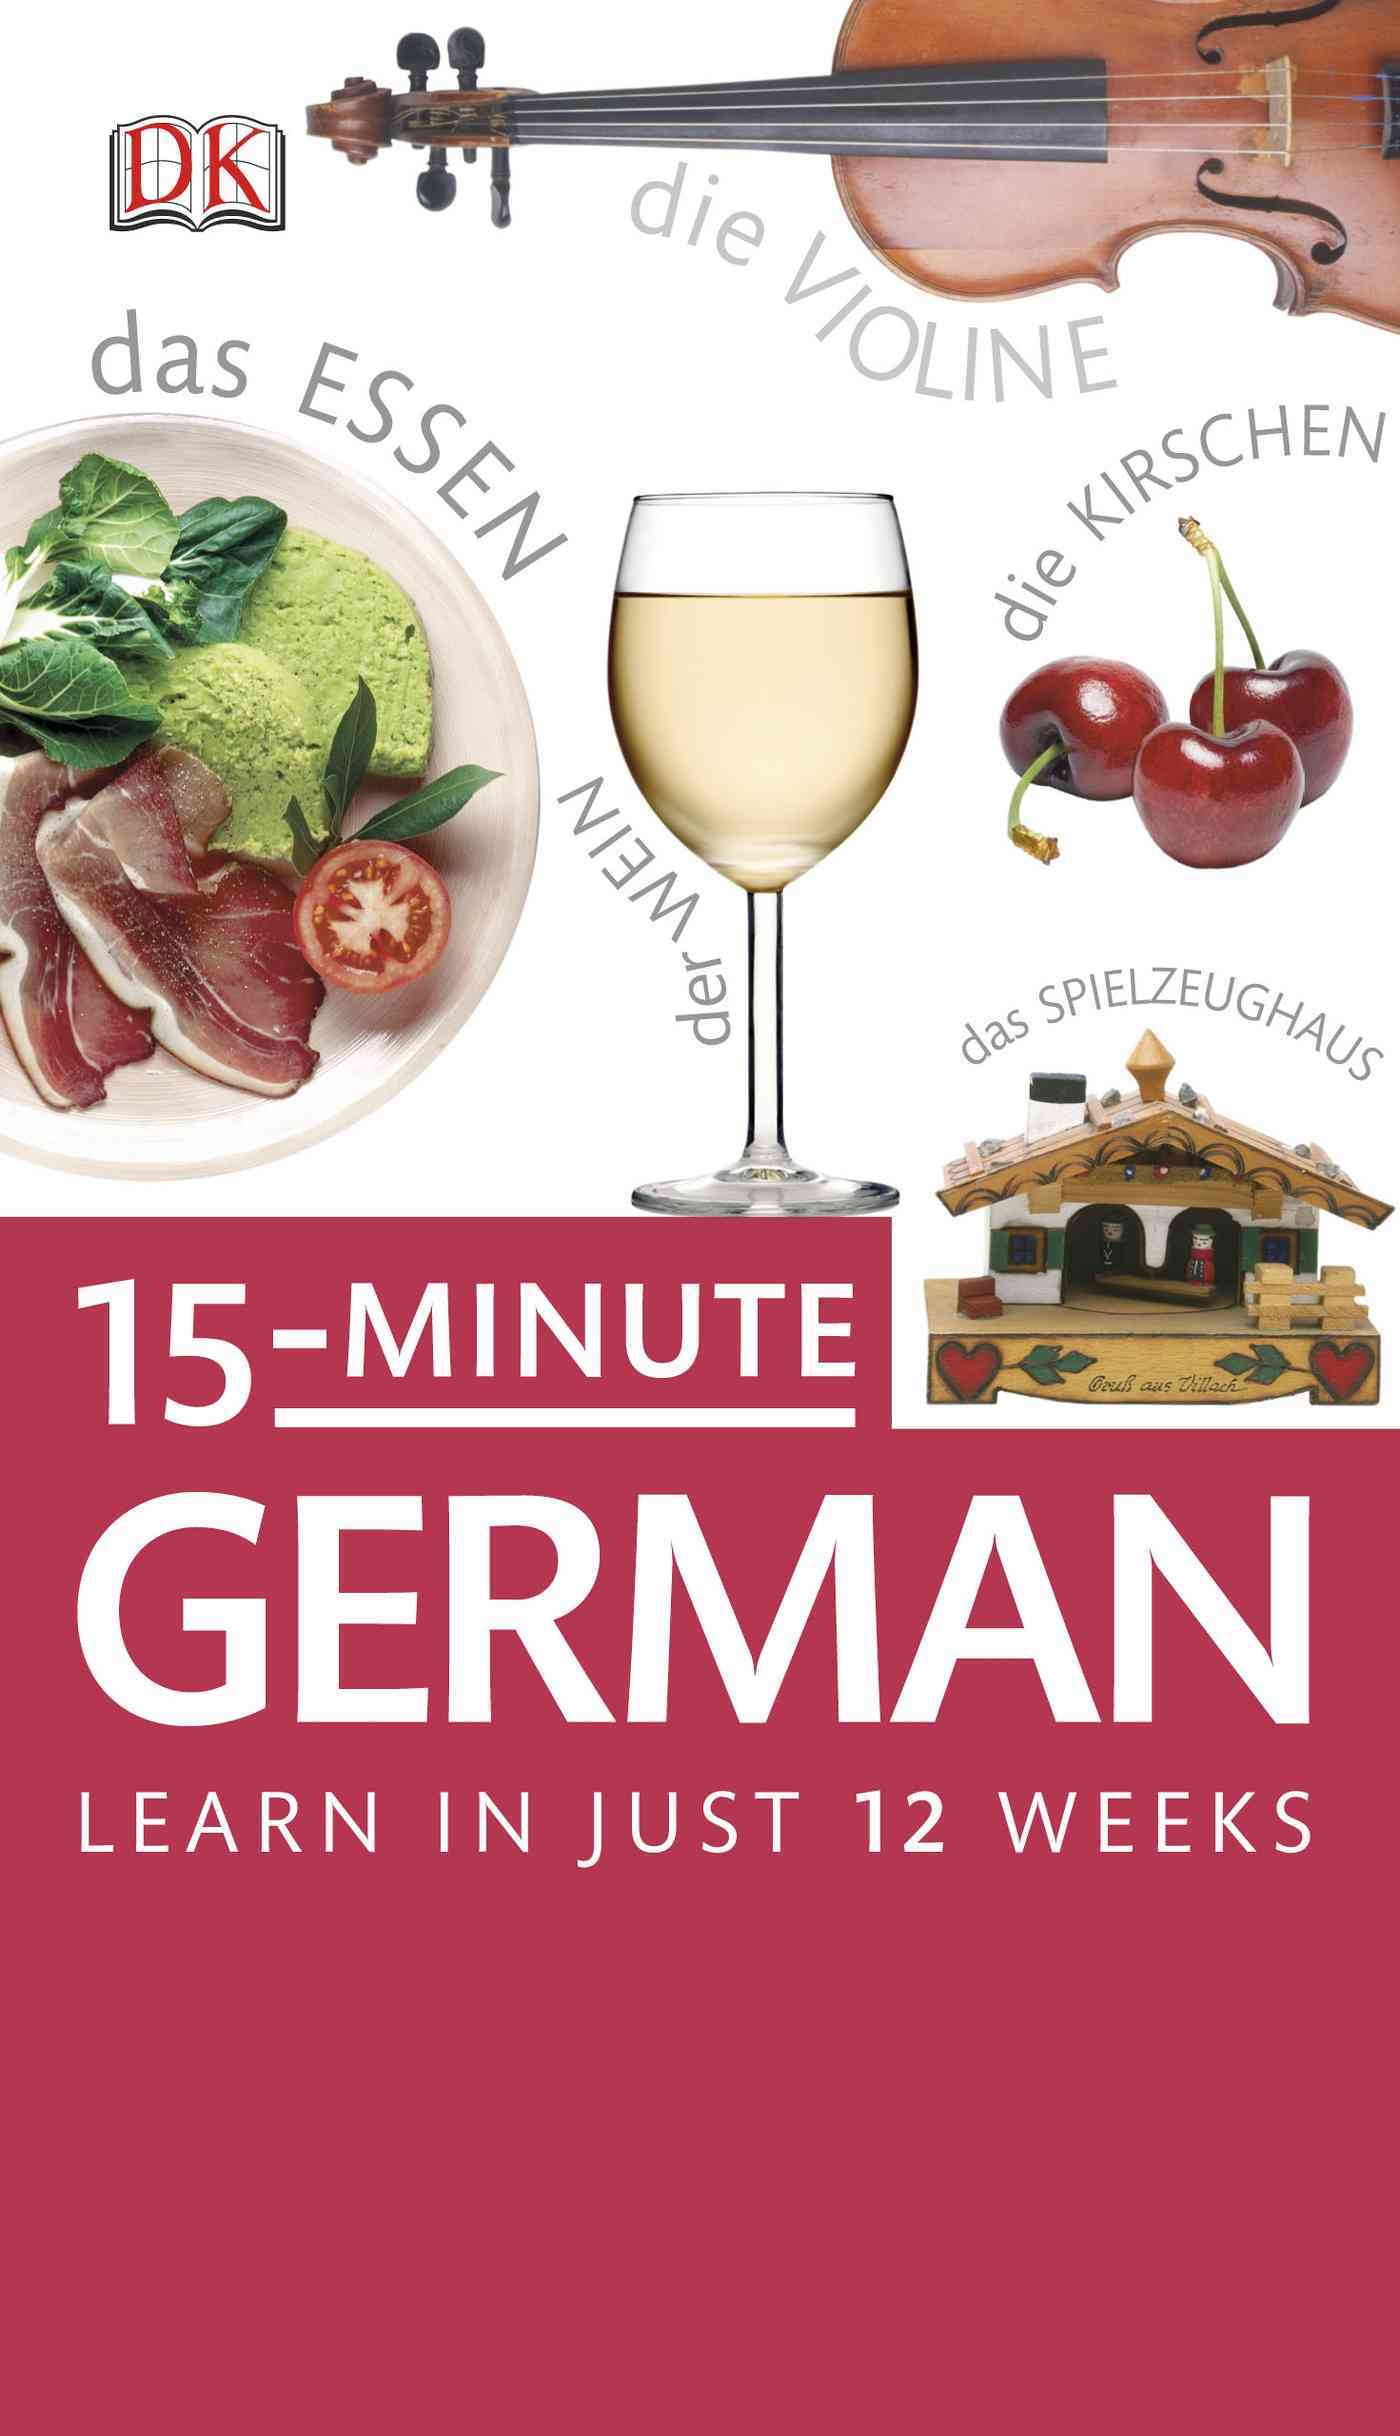 15-Minute German By Dorling Kindersley, Inc. (COR)